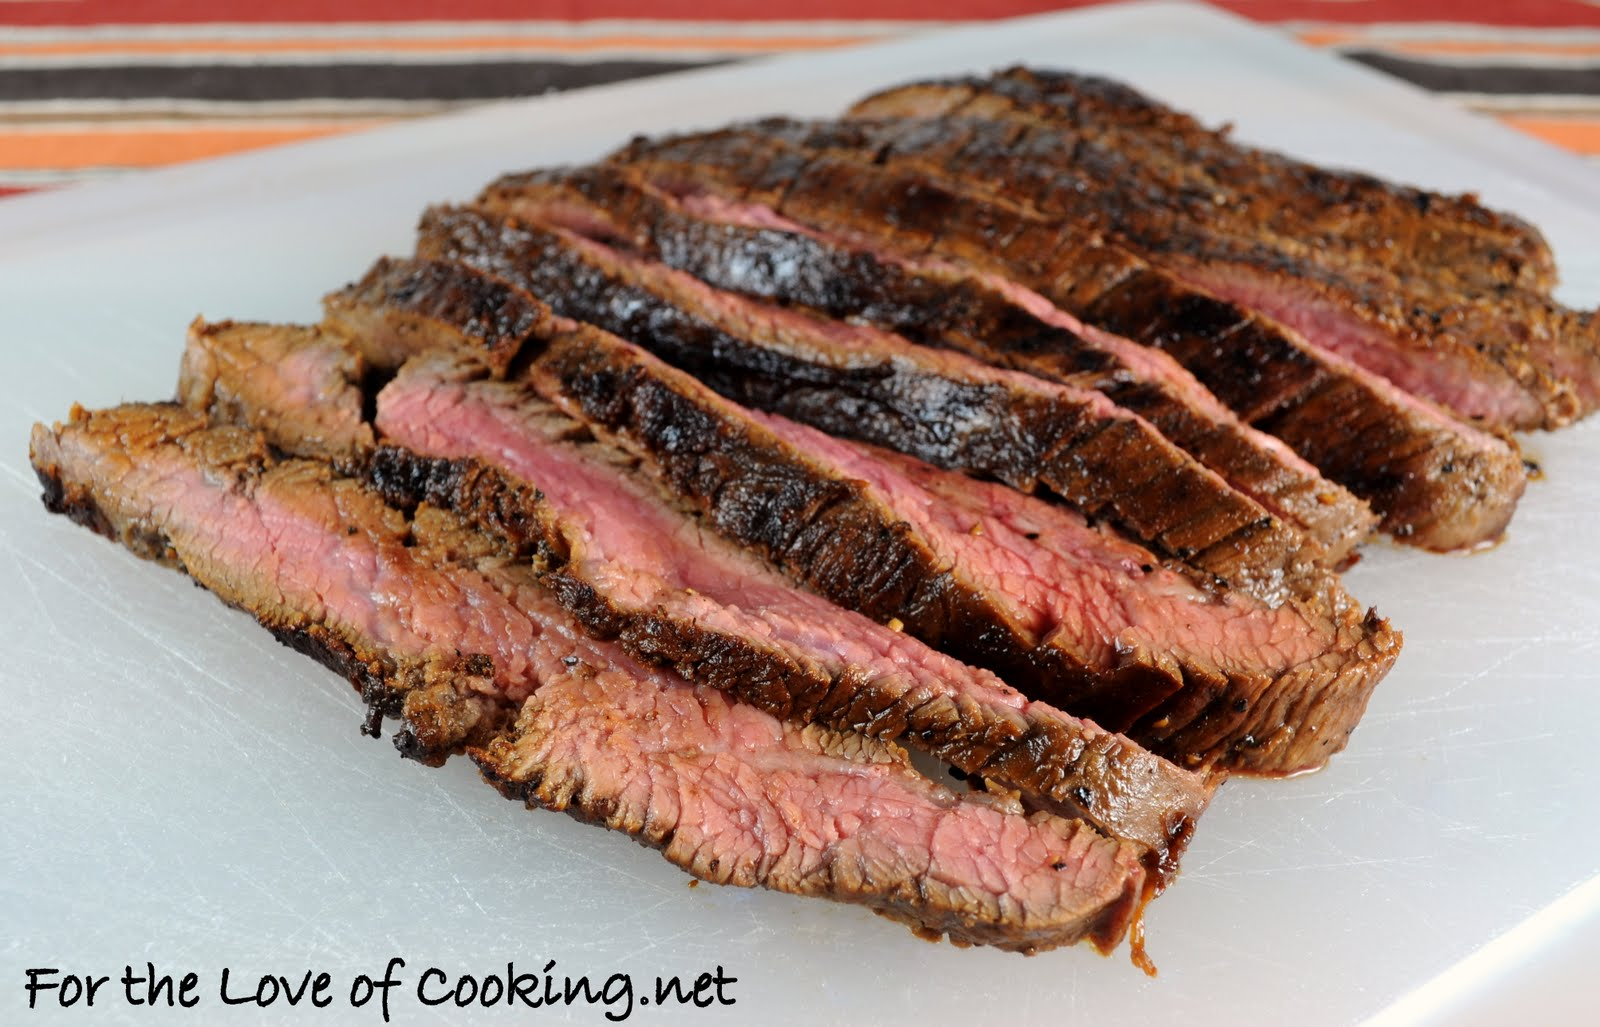 For the Love of Cooking: Soy and Honey Marinated Flank Steak